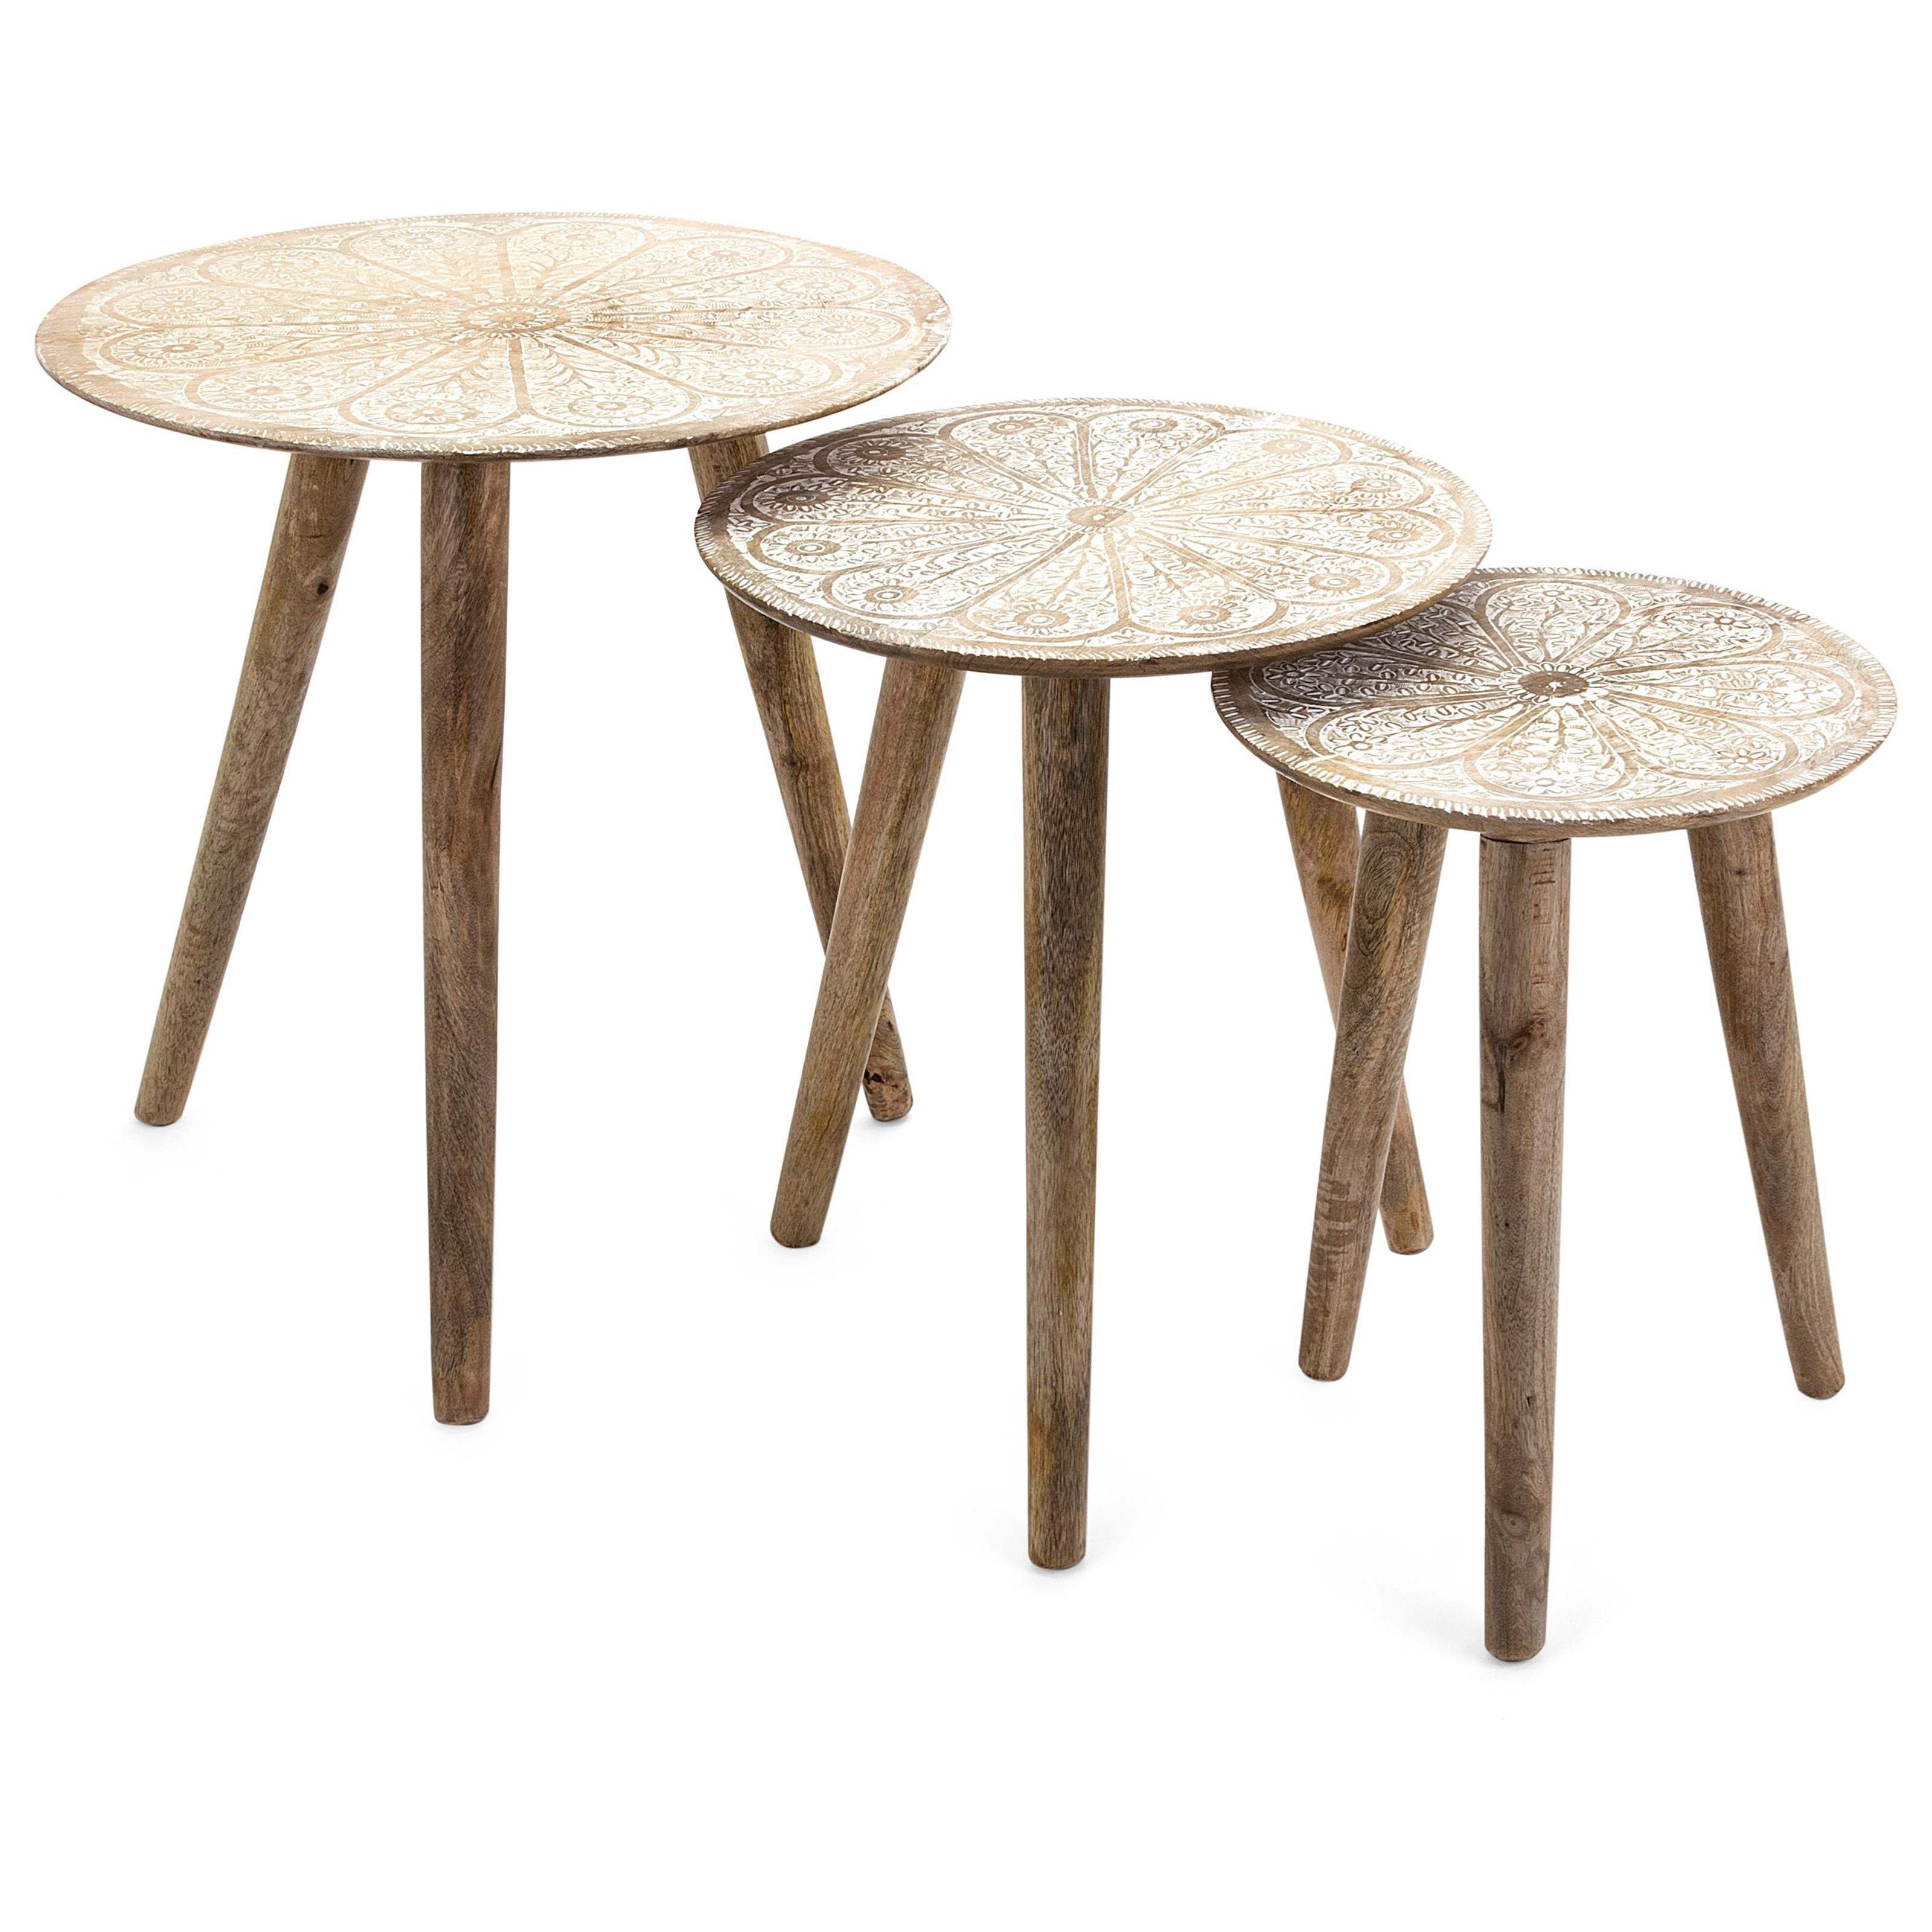 Accent Tables and Cabinets Cashel Round Tables - Set of 3 by IMAX Worldwide Home at Alison Craig Home Furnishings